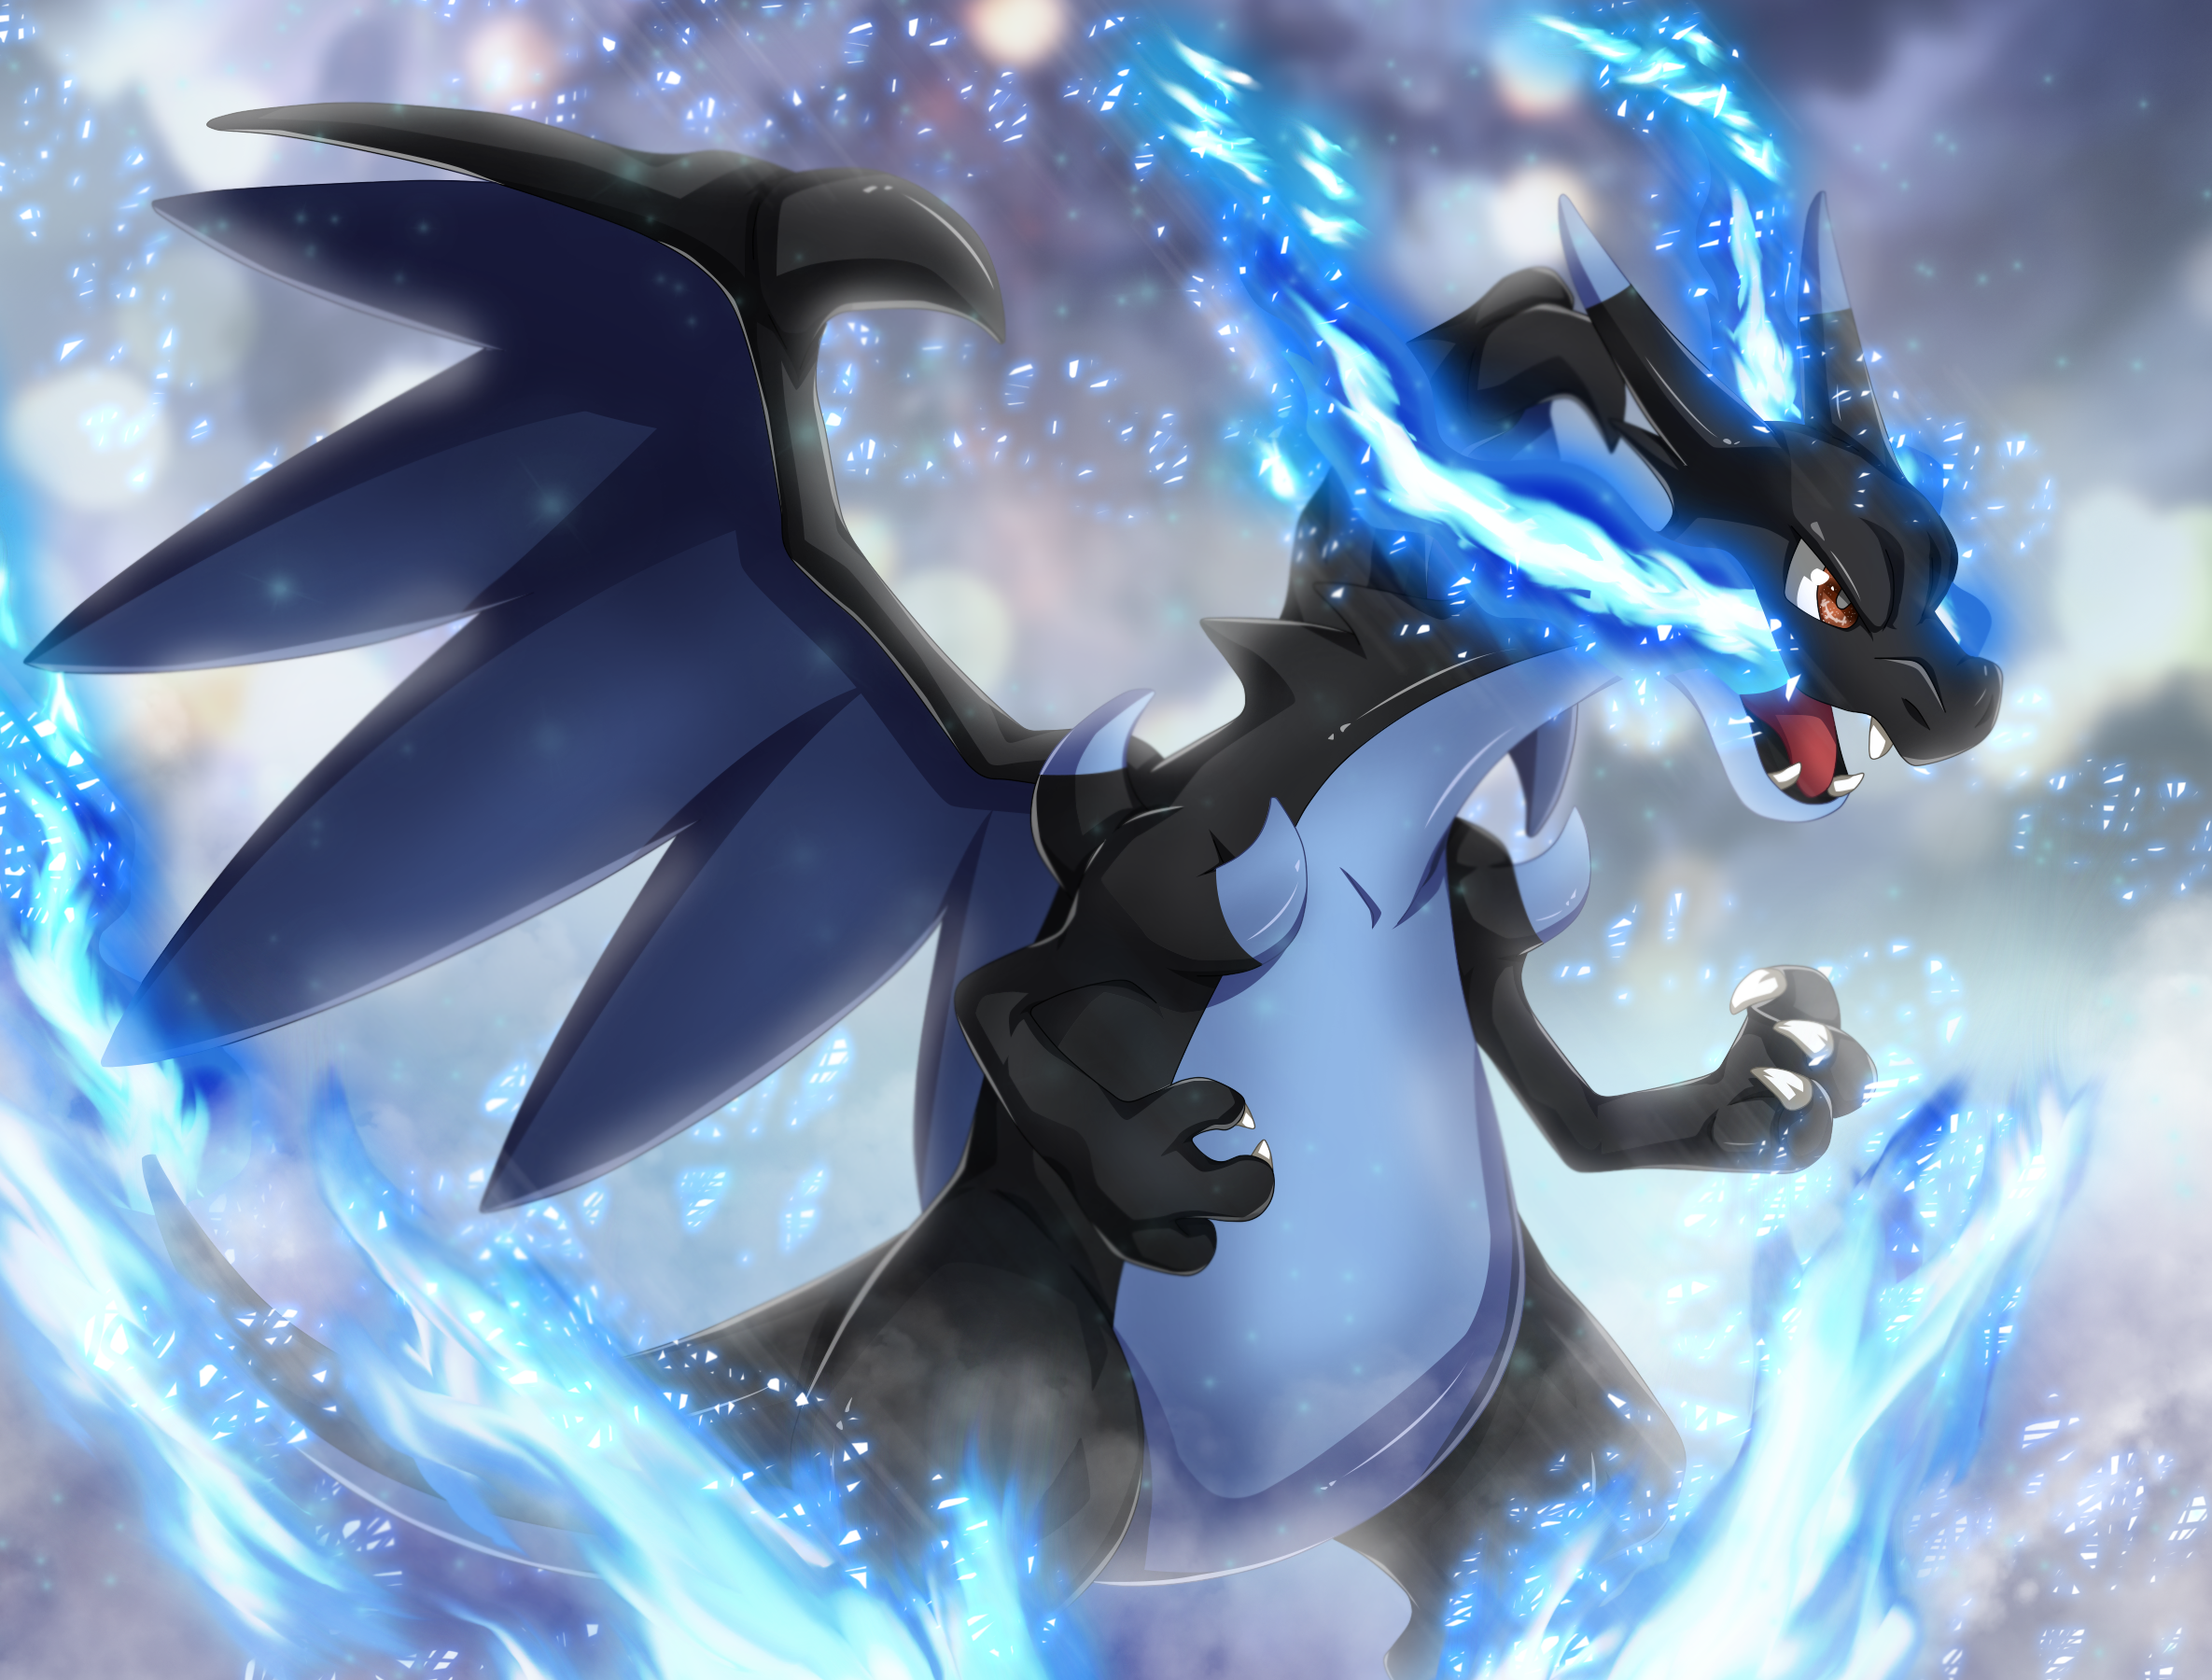 Anime Mega Charizard (#266071) - HD Wallpaper ...